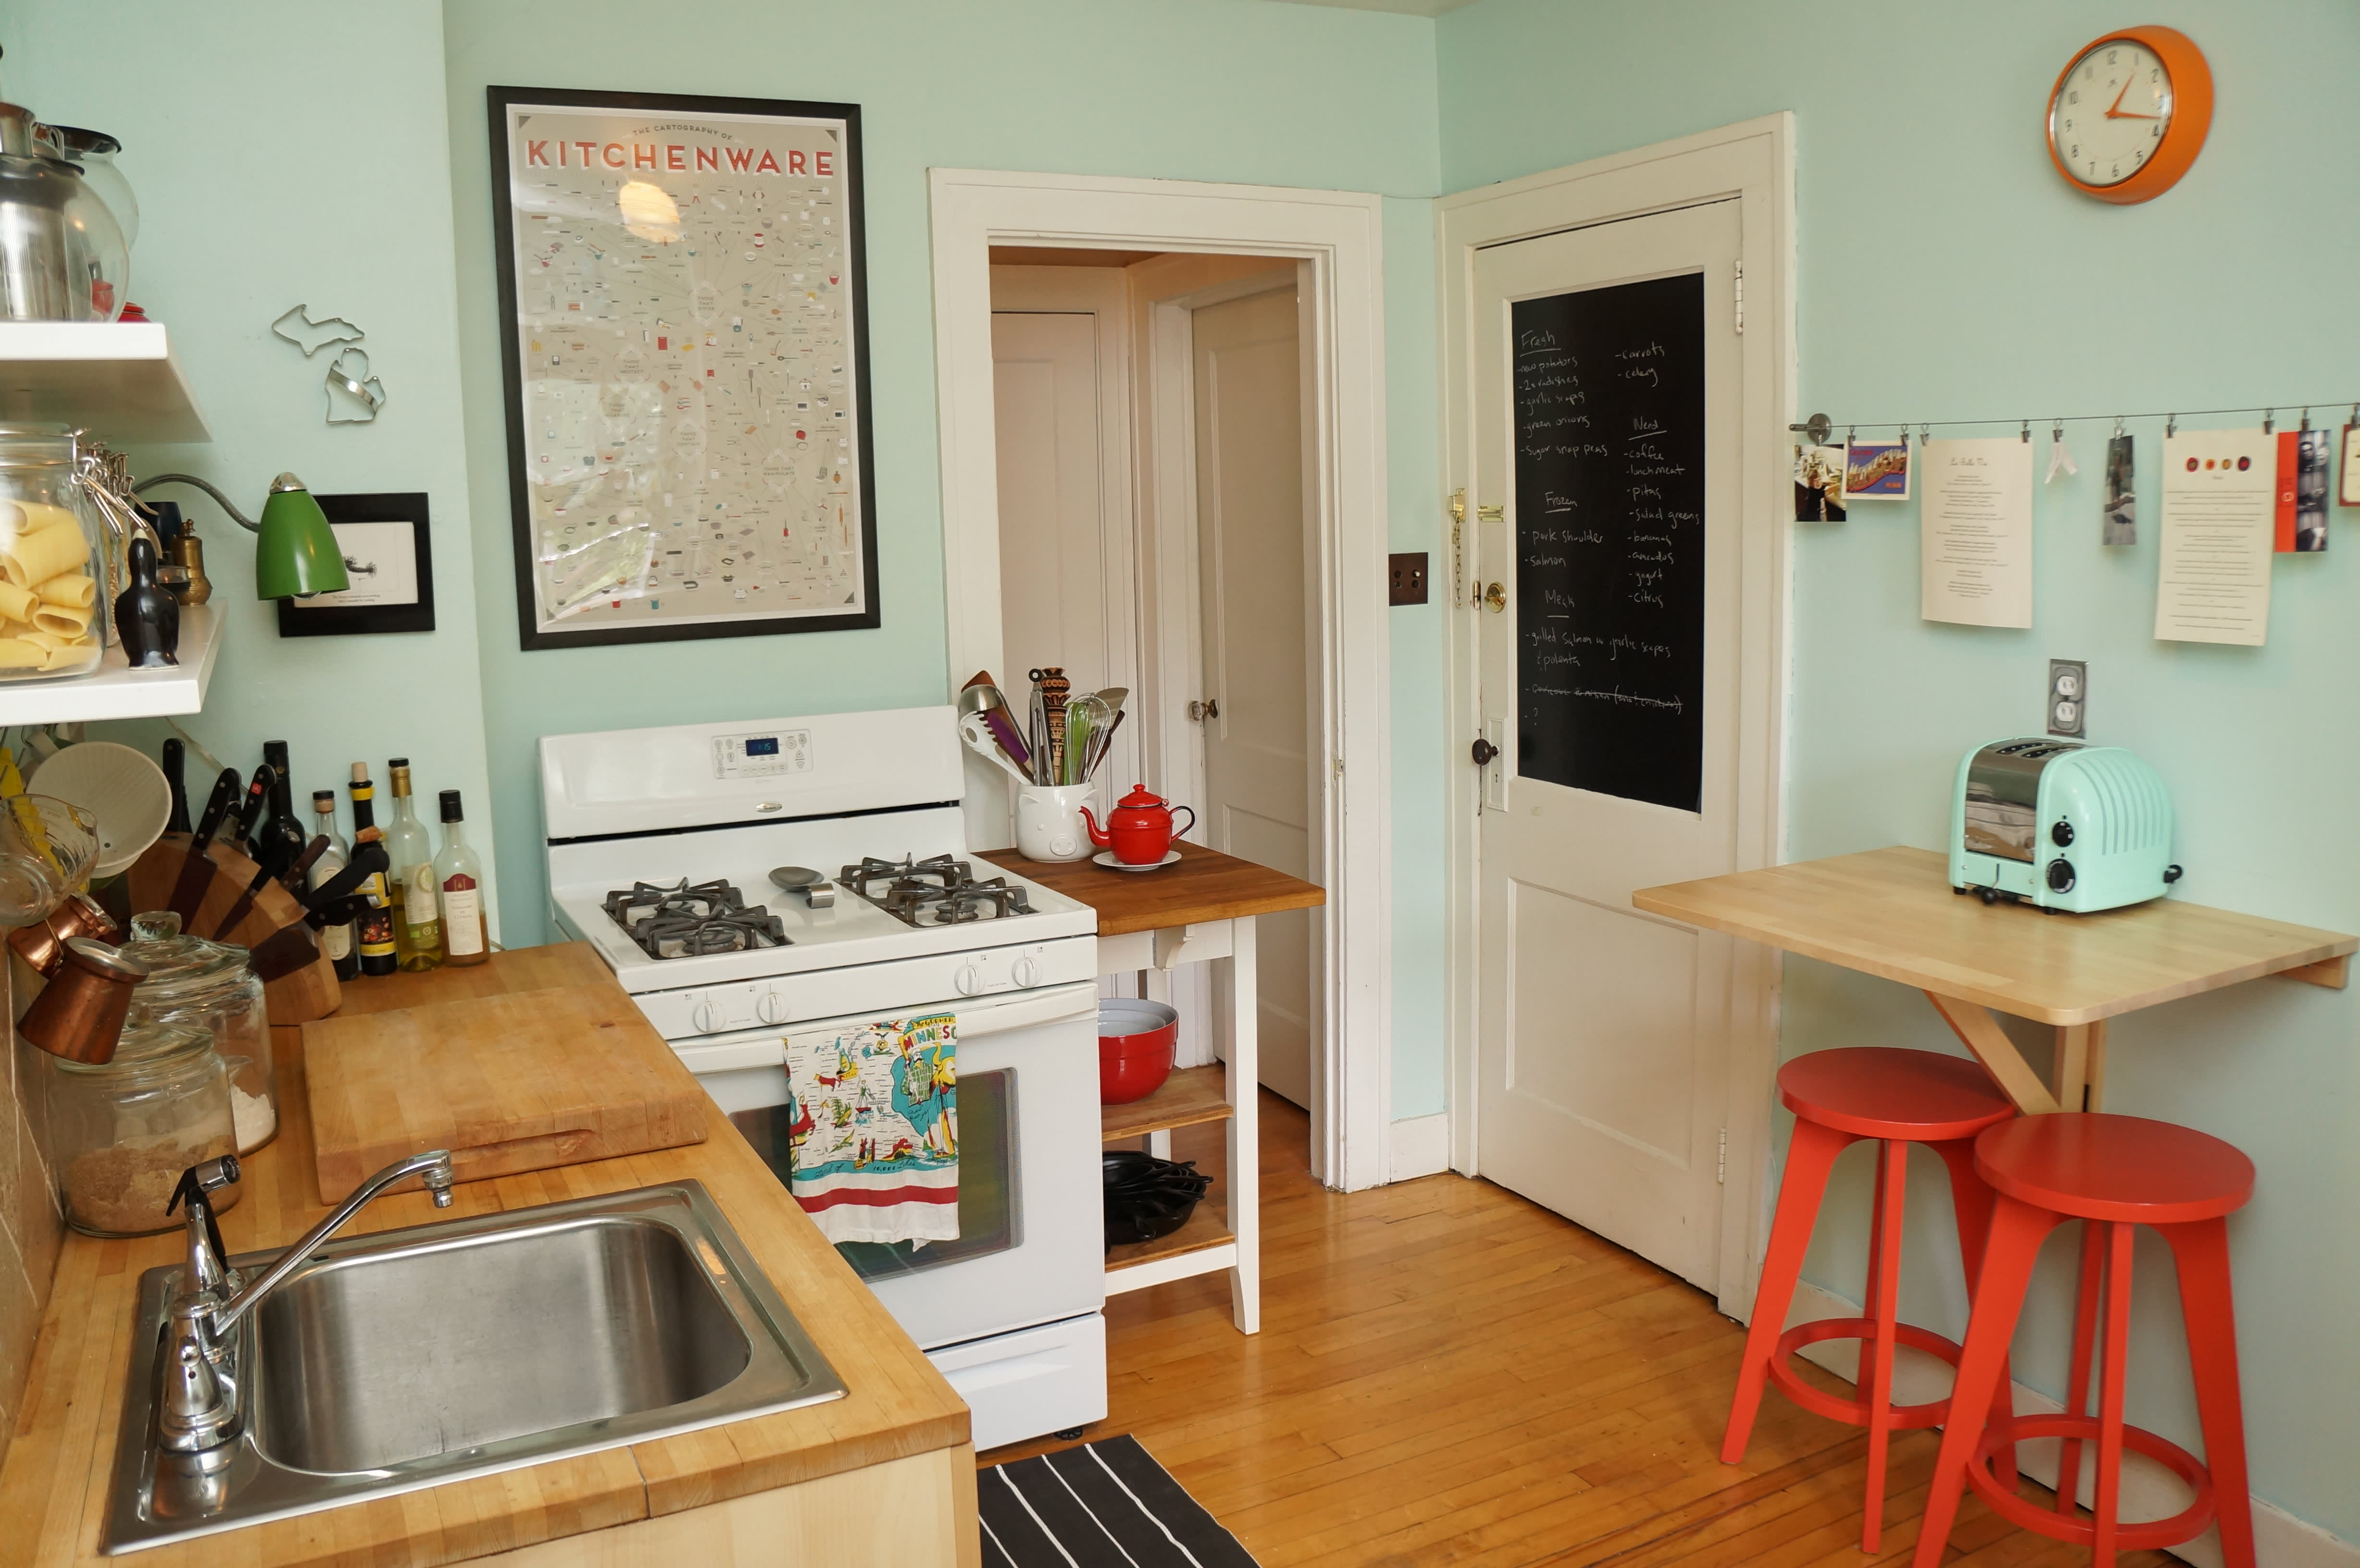 15 Small Space Kitchens, Tips, and Storage Solutions That Inspired Us: gallery image 6